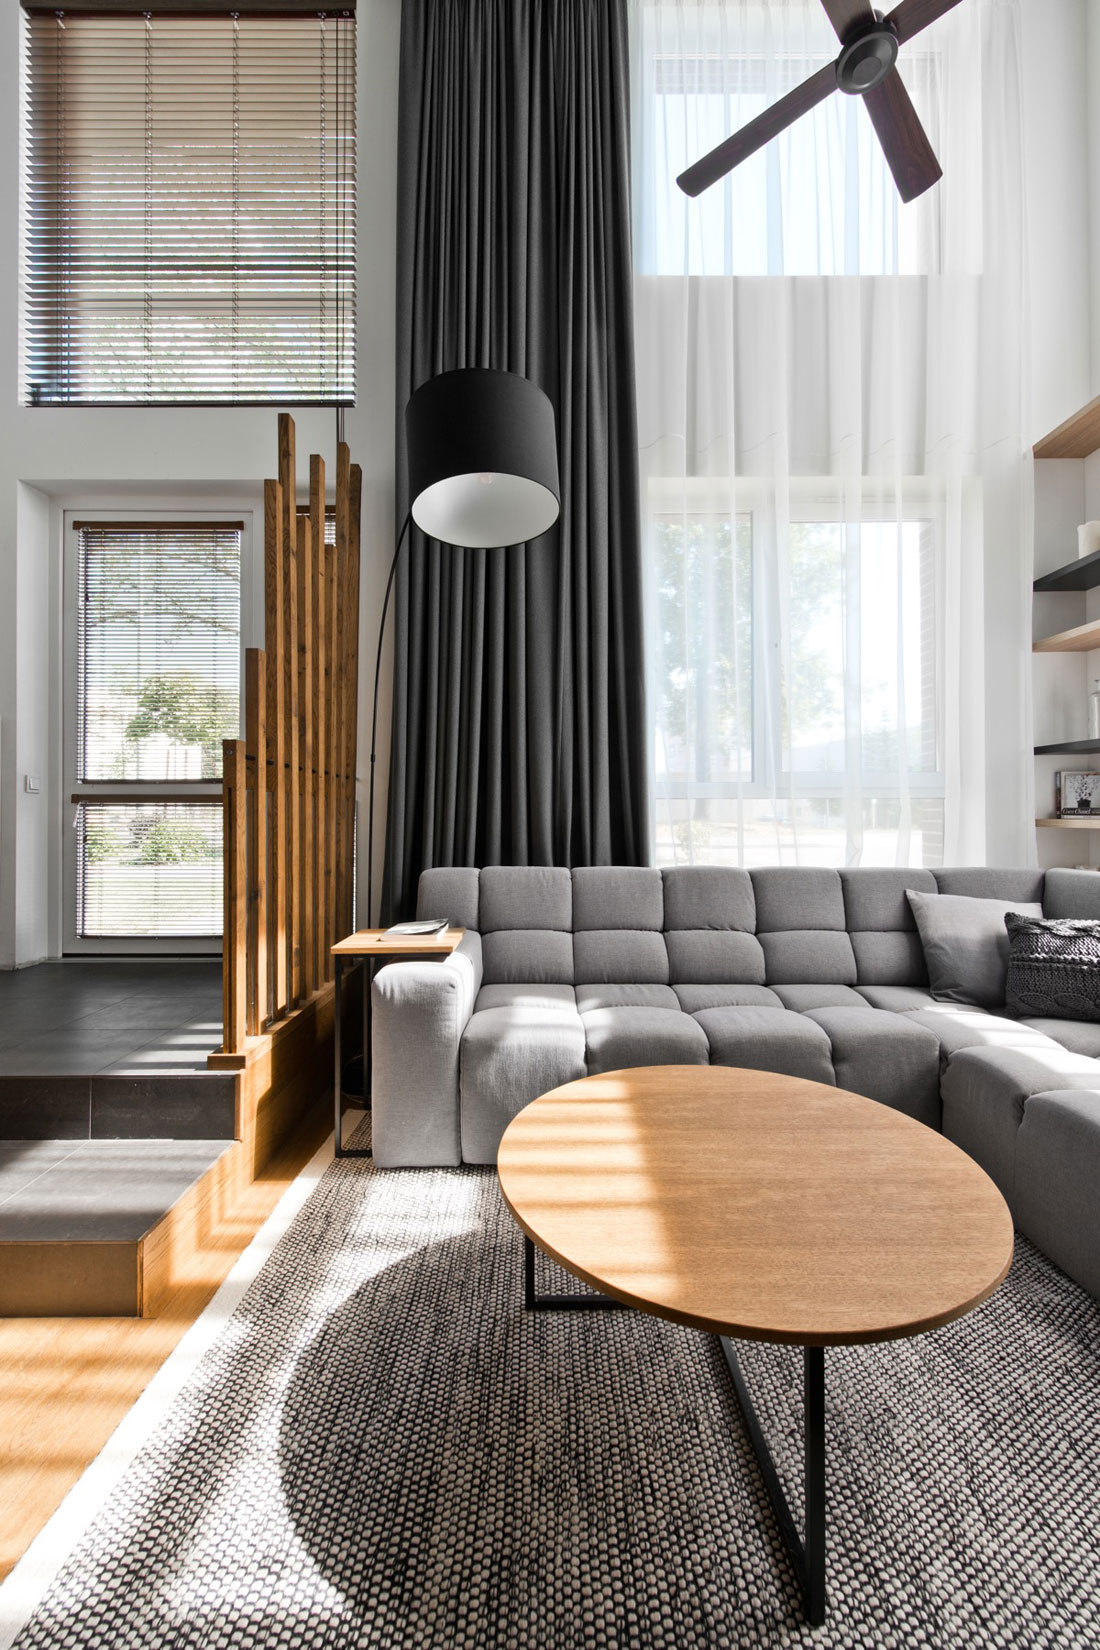 Modern Minimalist Living Room Design: Scandinavian Interior Design In A Beautiful Small